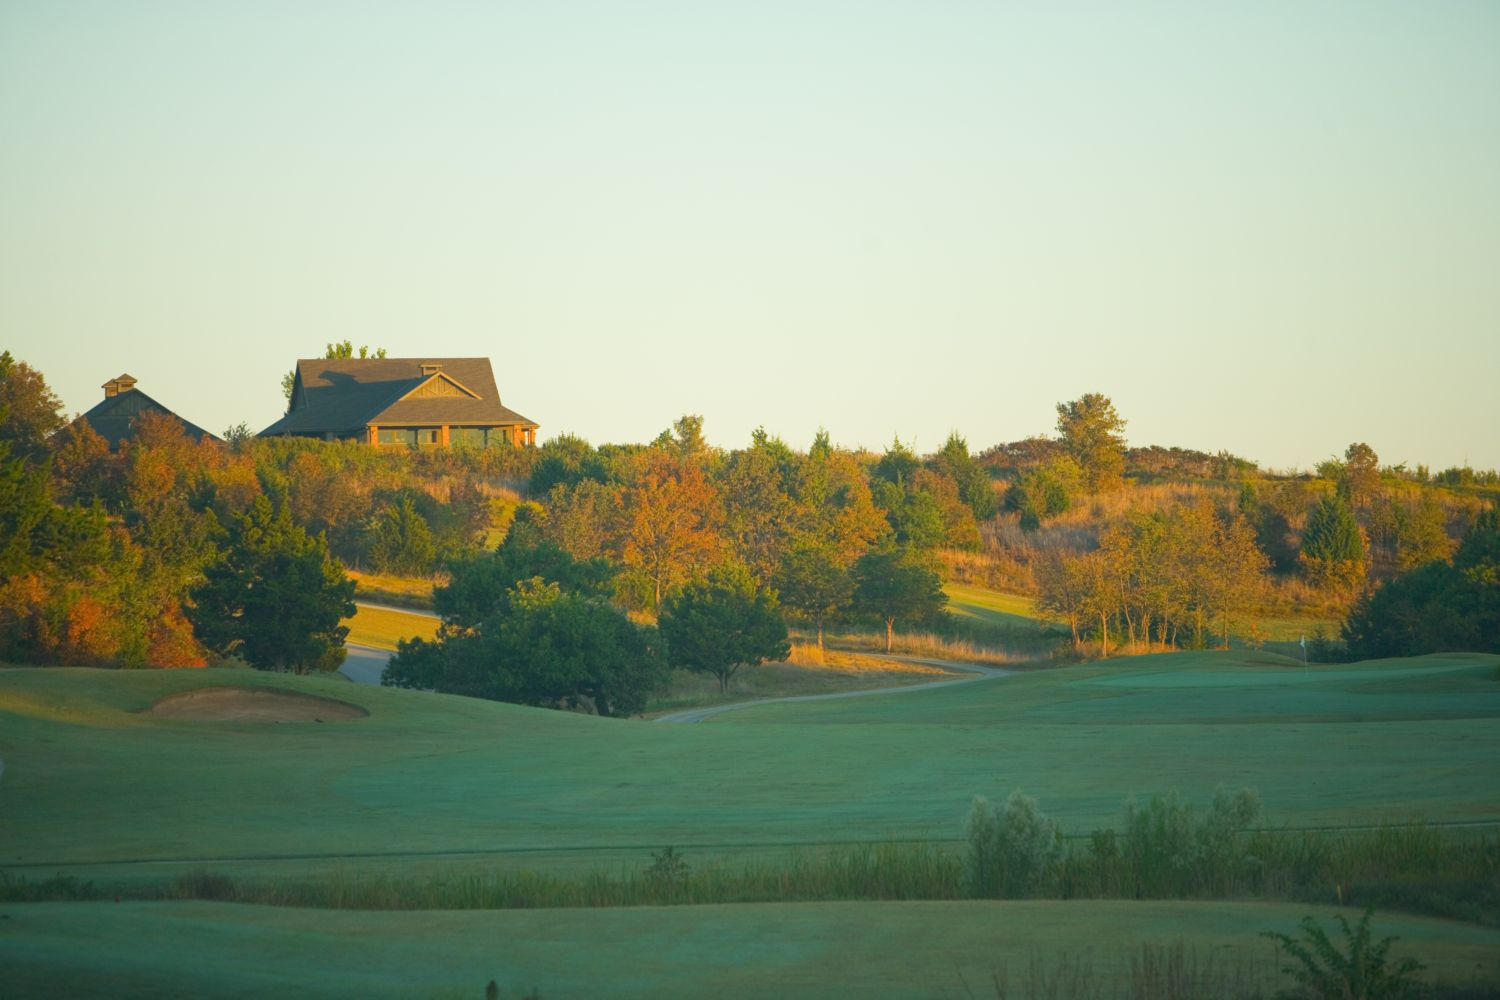 Chickasaw Pointe Golf Club is located in Kingston, Oklahoma